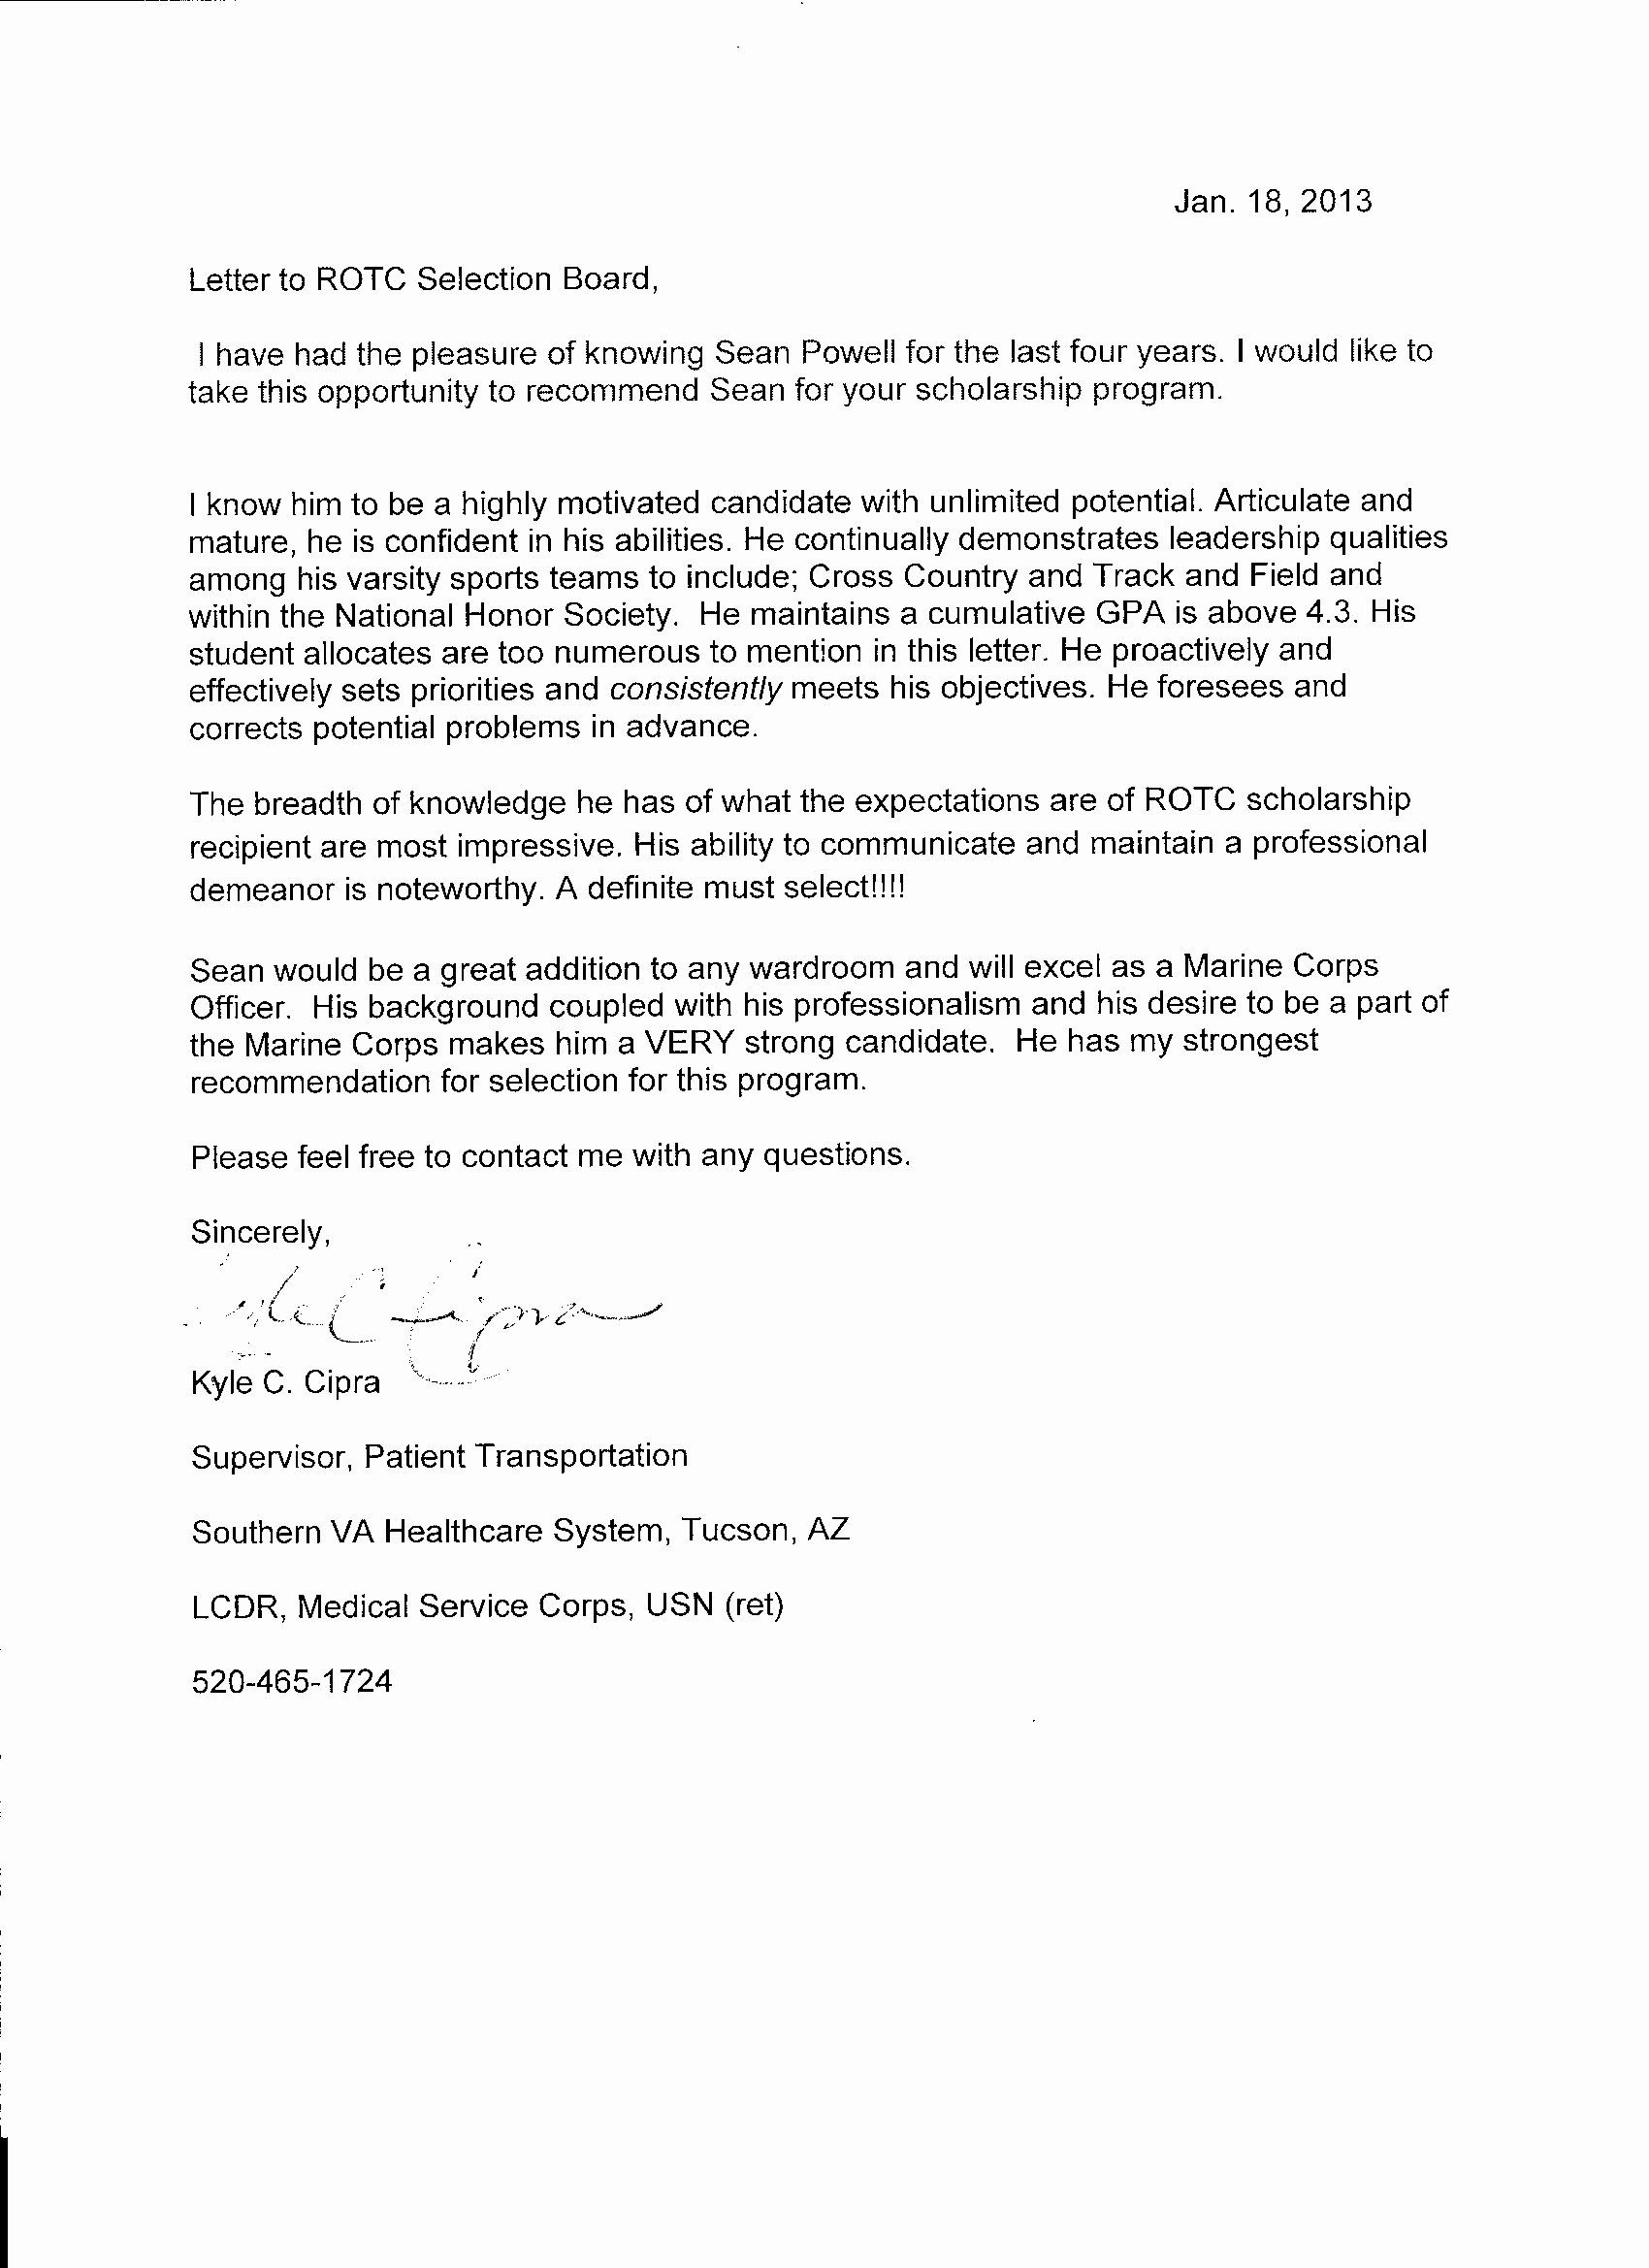 Letter Of Recommendation Military Awesome 22 Of Marine Corps Letter Template Military Letters Letter Of Recommendation Army Letters Military letter of recommendation template